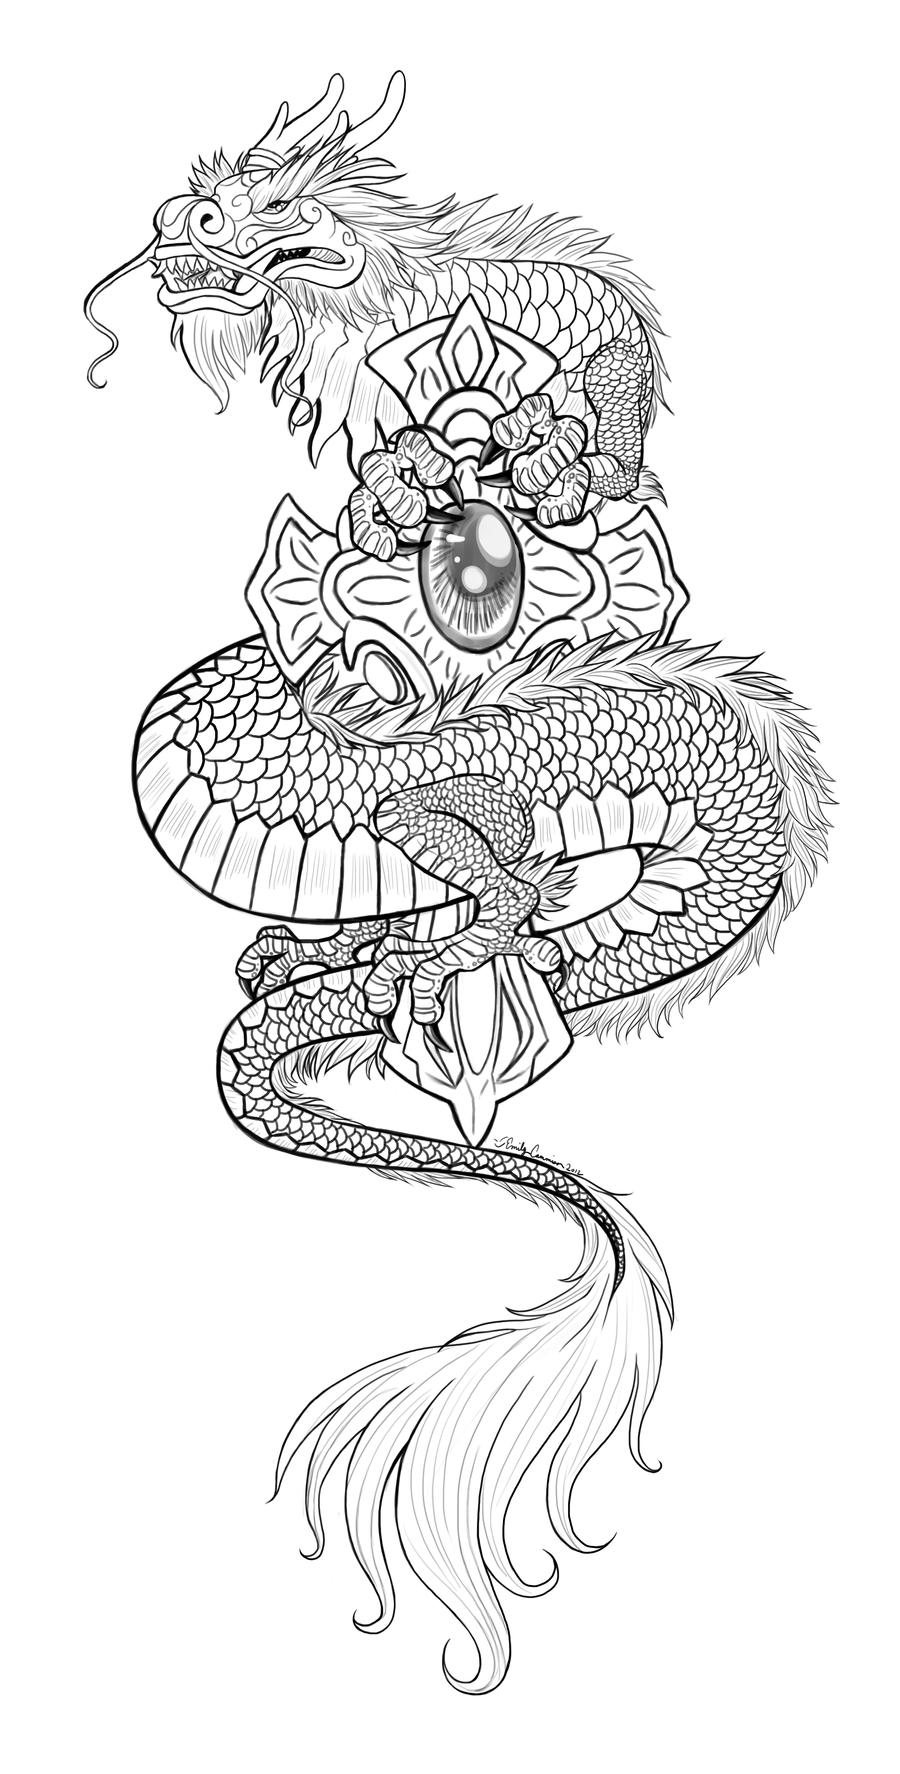 Line Drawing Dragon Tattoo : Dragon crucifix tattoo lineart by emilycammisa on deviantart